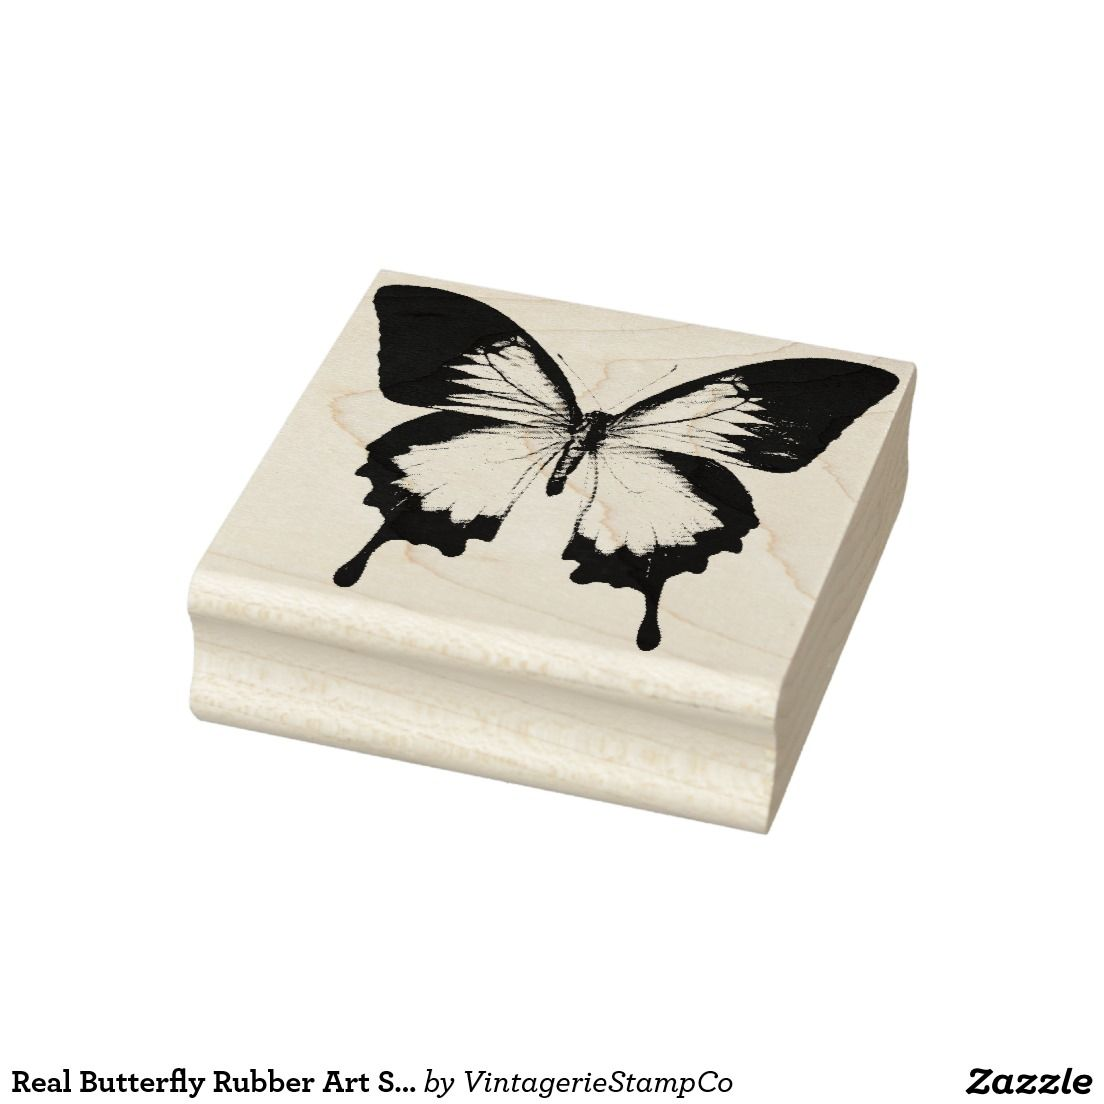 Real Butterfly Rubber Art Stamp